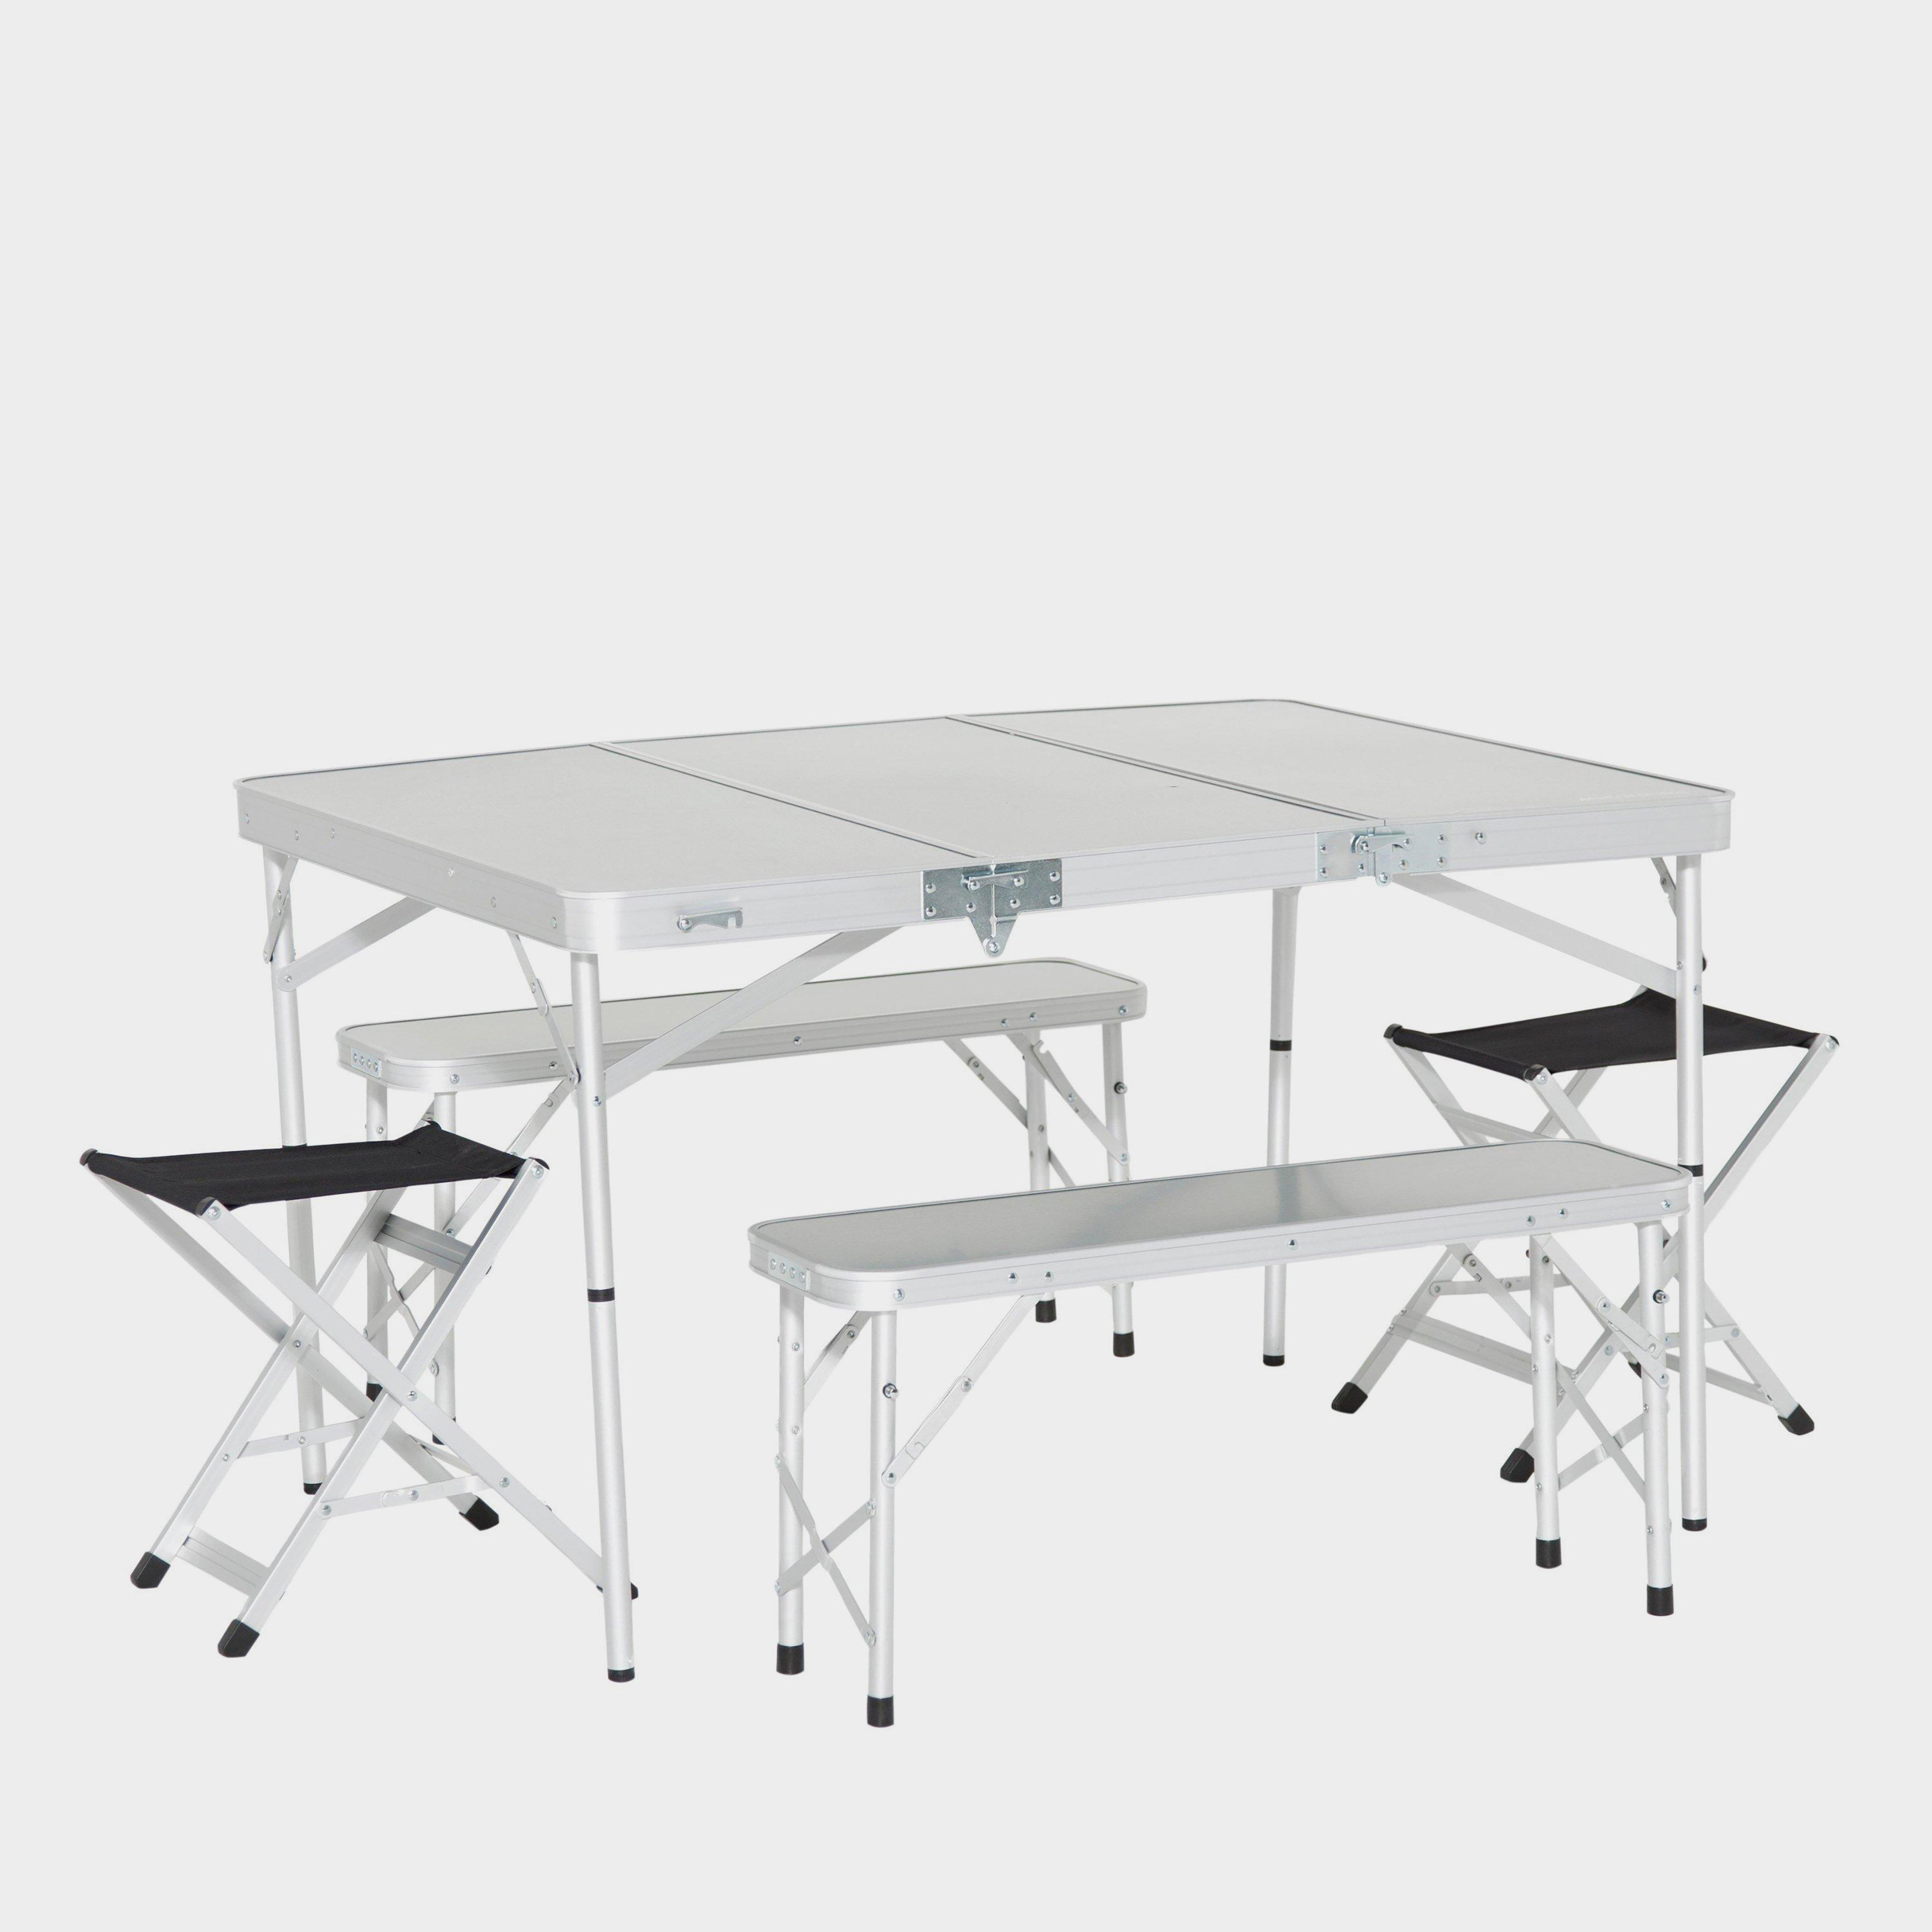 Camping Folding Table And Chairs Set Camping Furniture Blacks